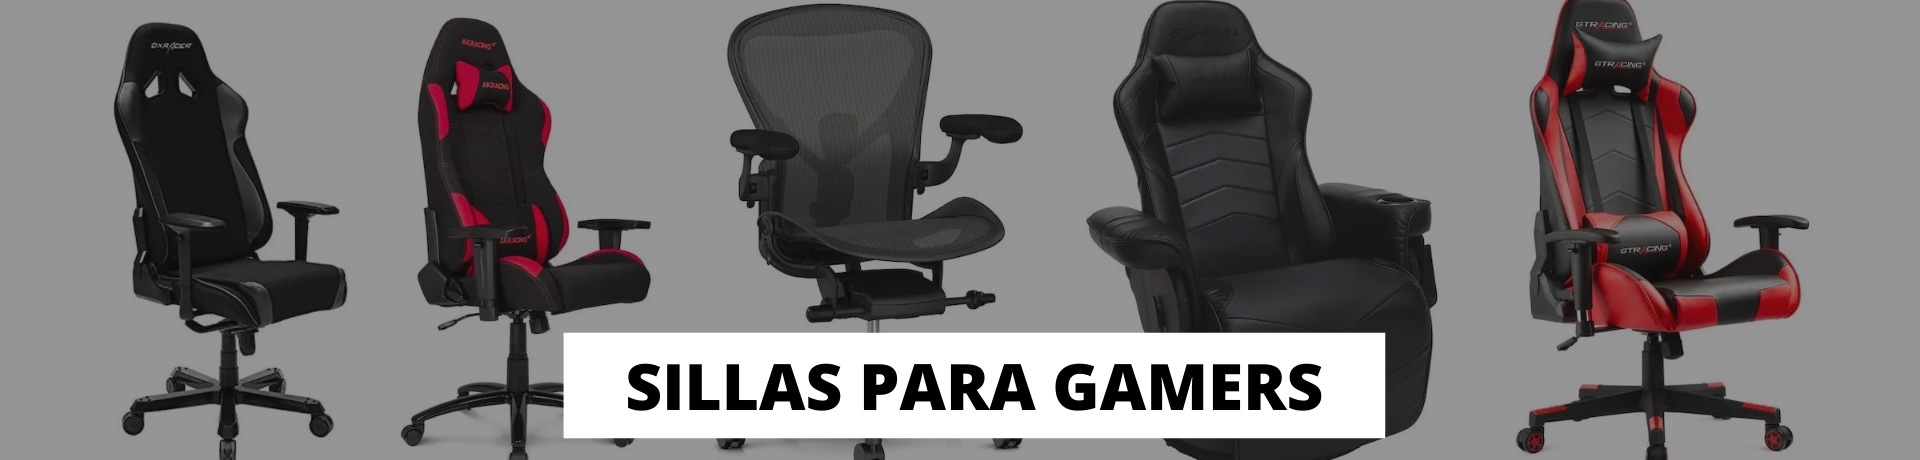 catalog/banner/sillas-gamers.jpg